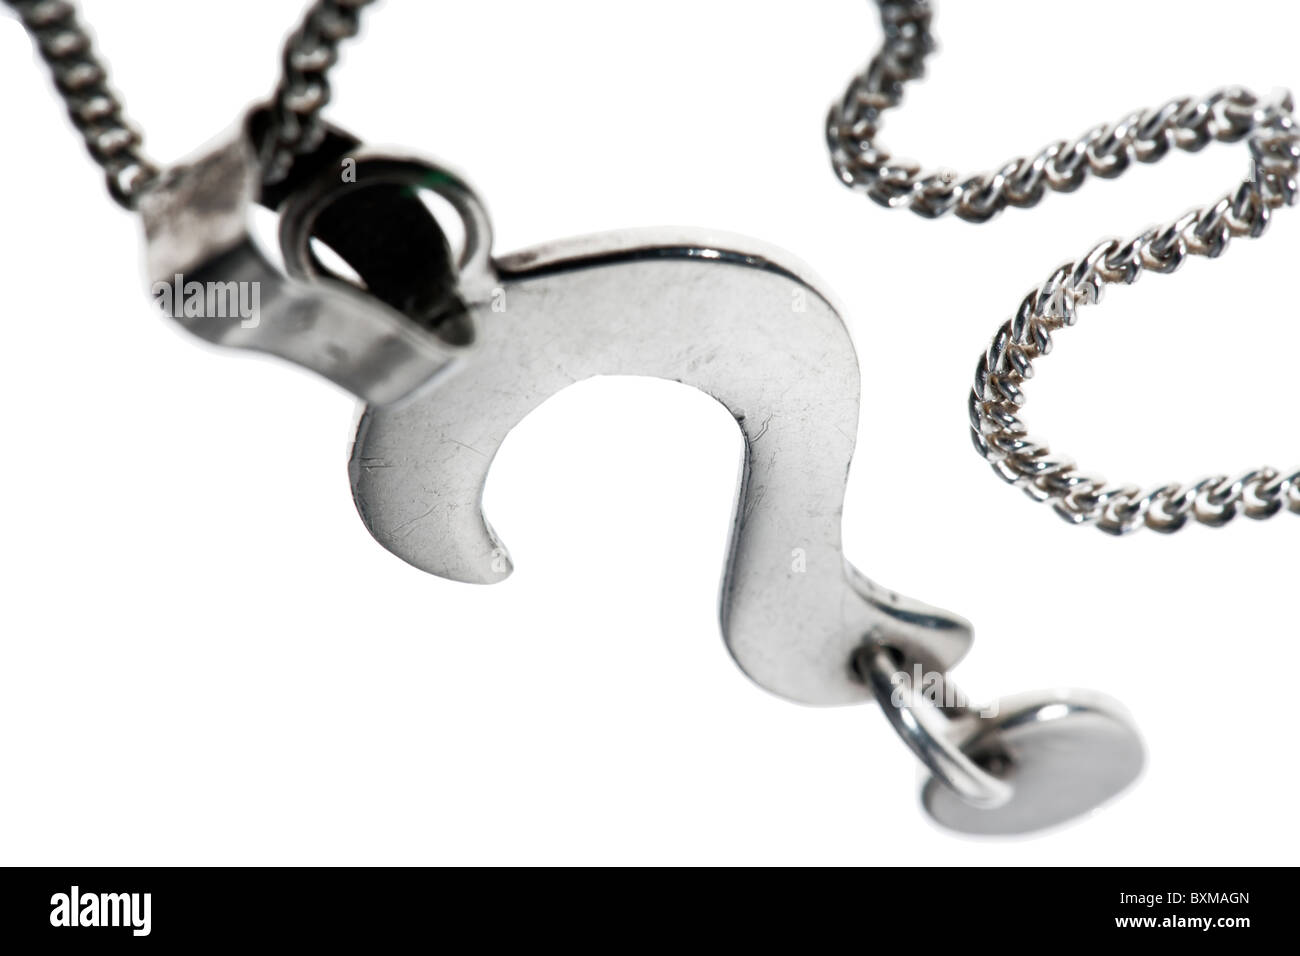 Silver question mark on a chain - Stock Image